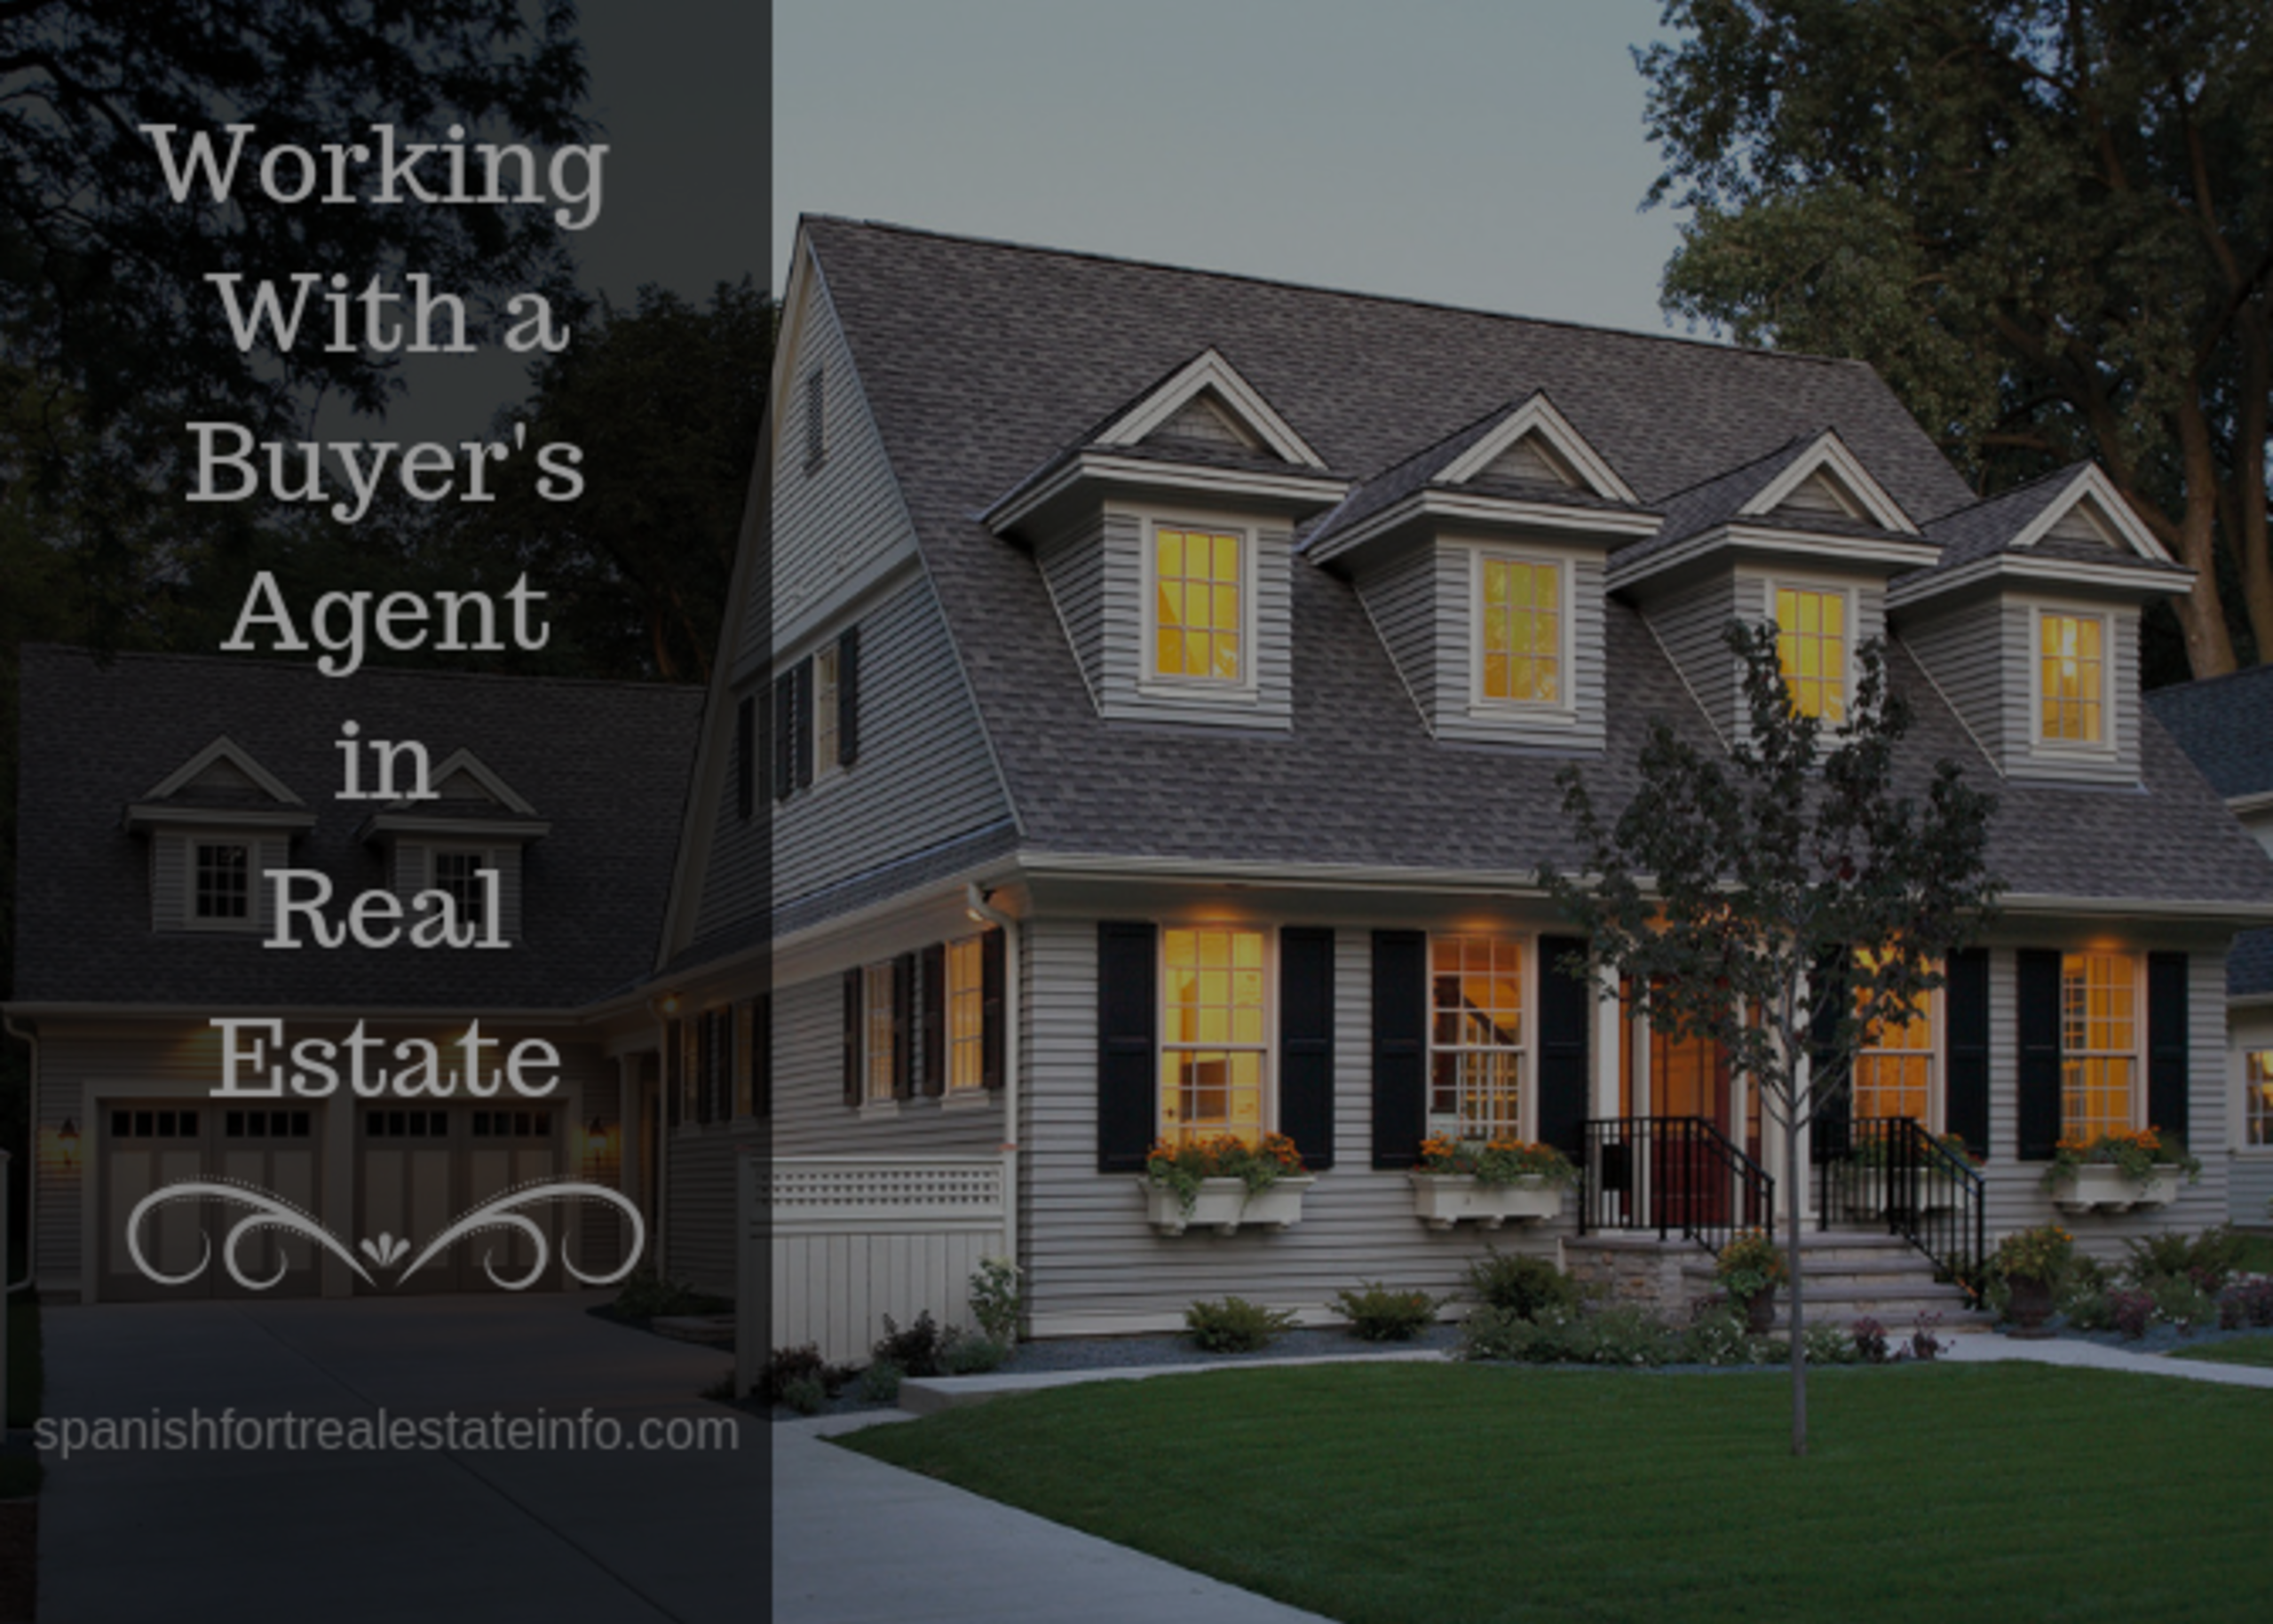 Working With a Buyer's Agent in Real Estate